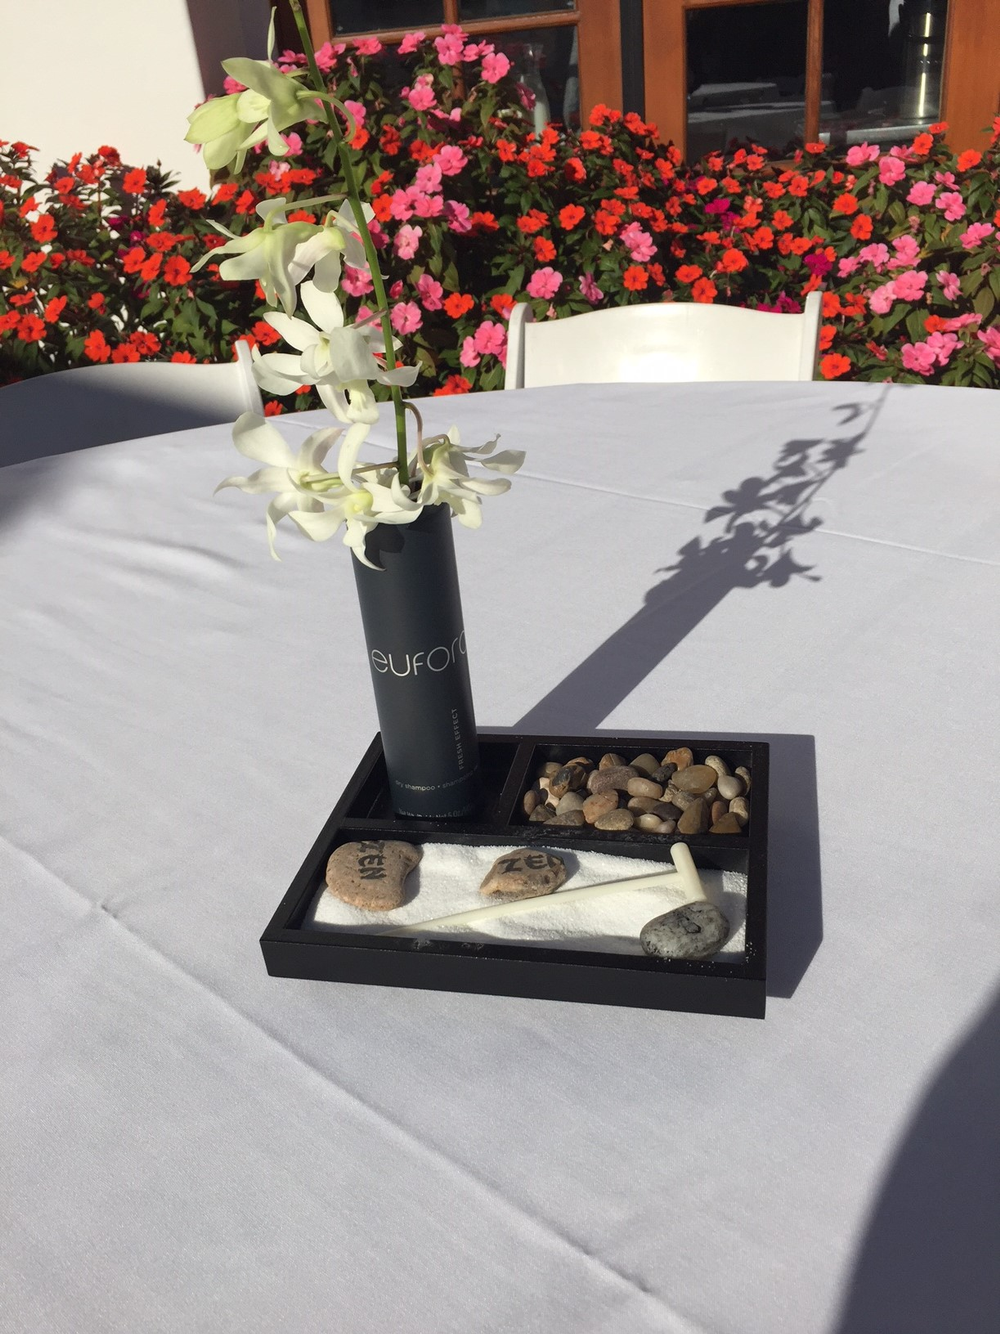 Even the table centerpieces emphasized the theme of mindfulness.